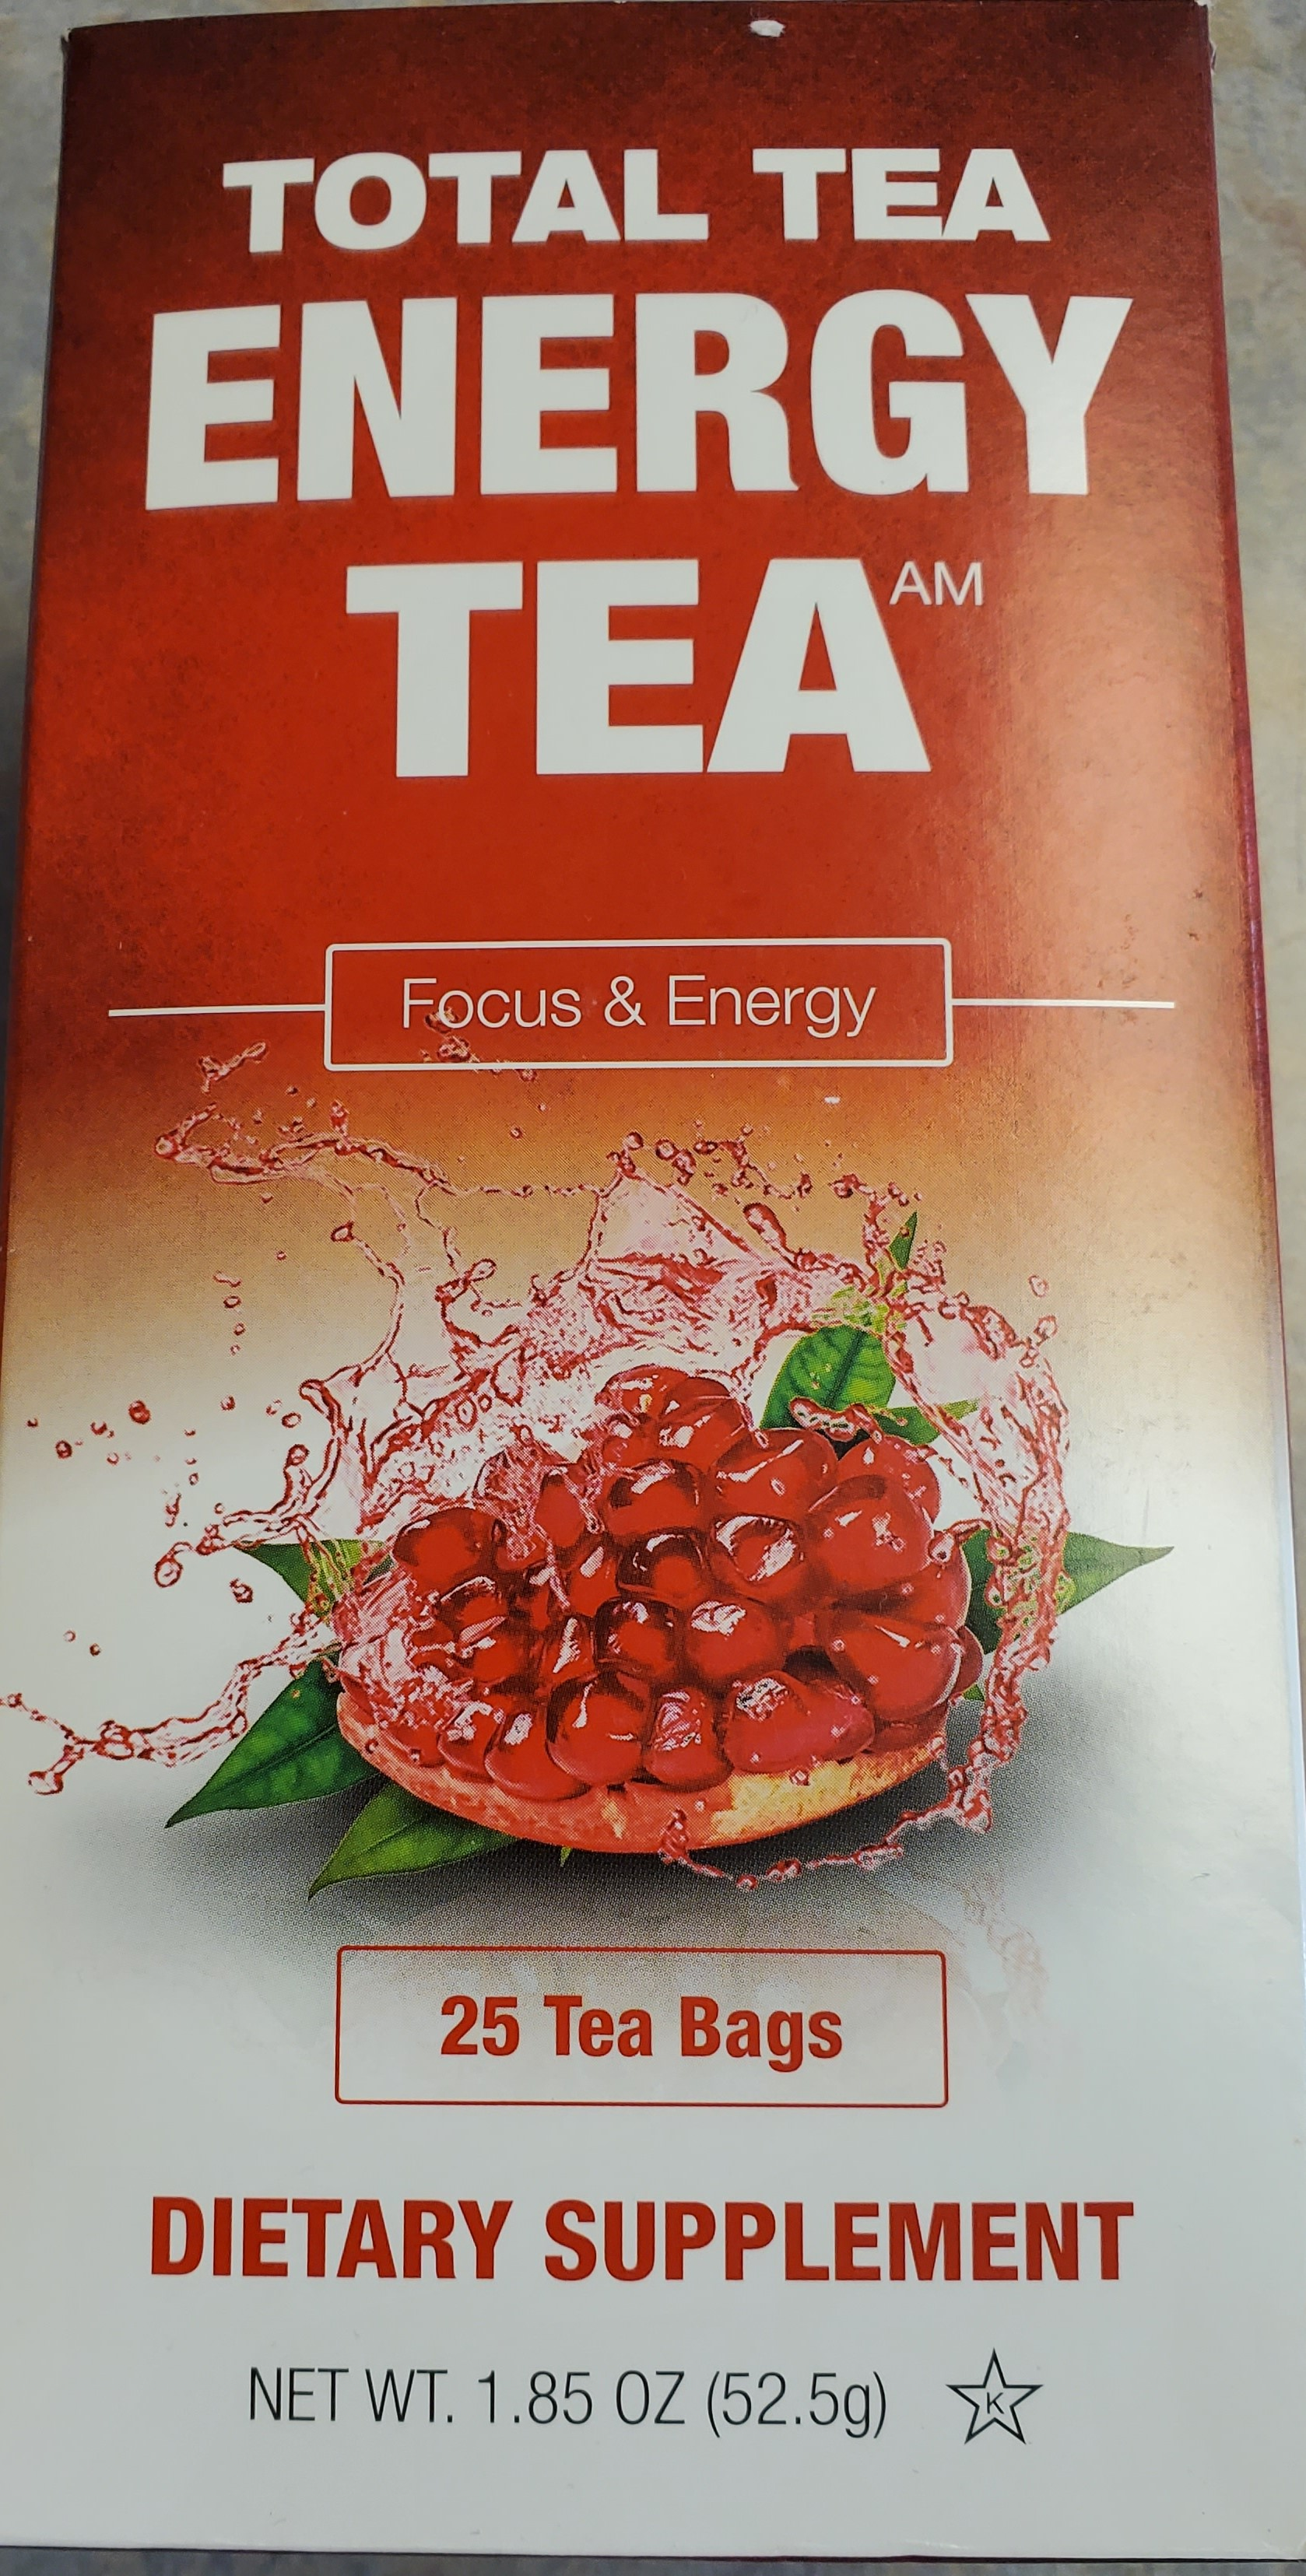 Total Tea Energy